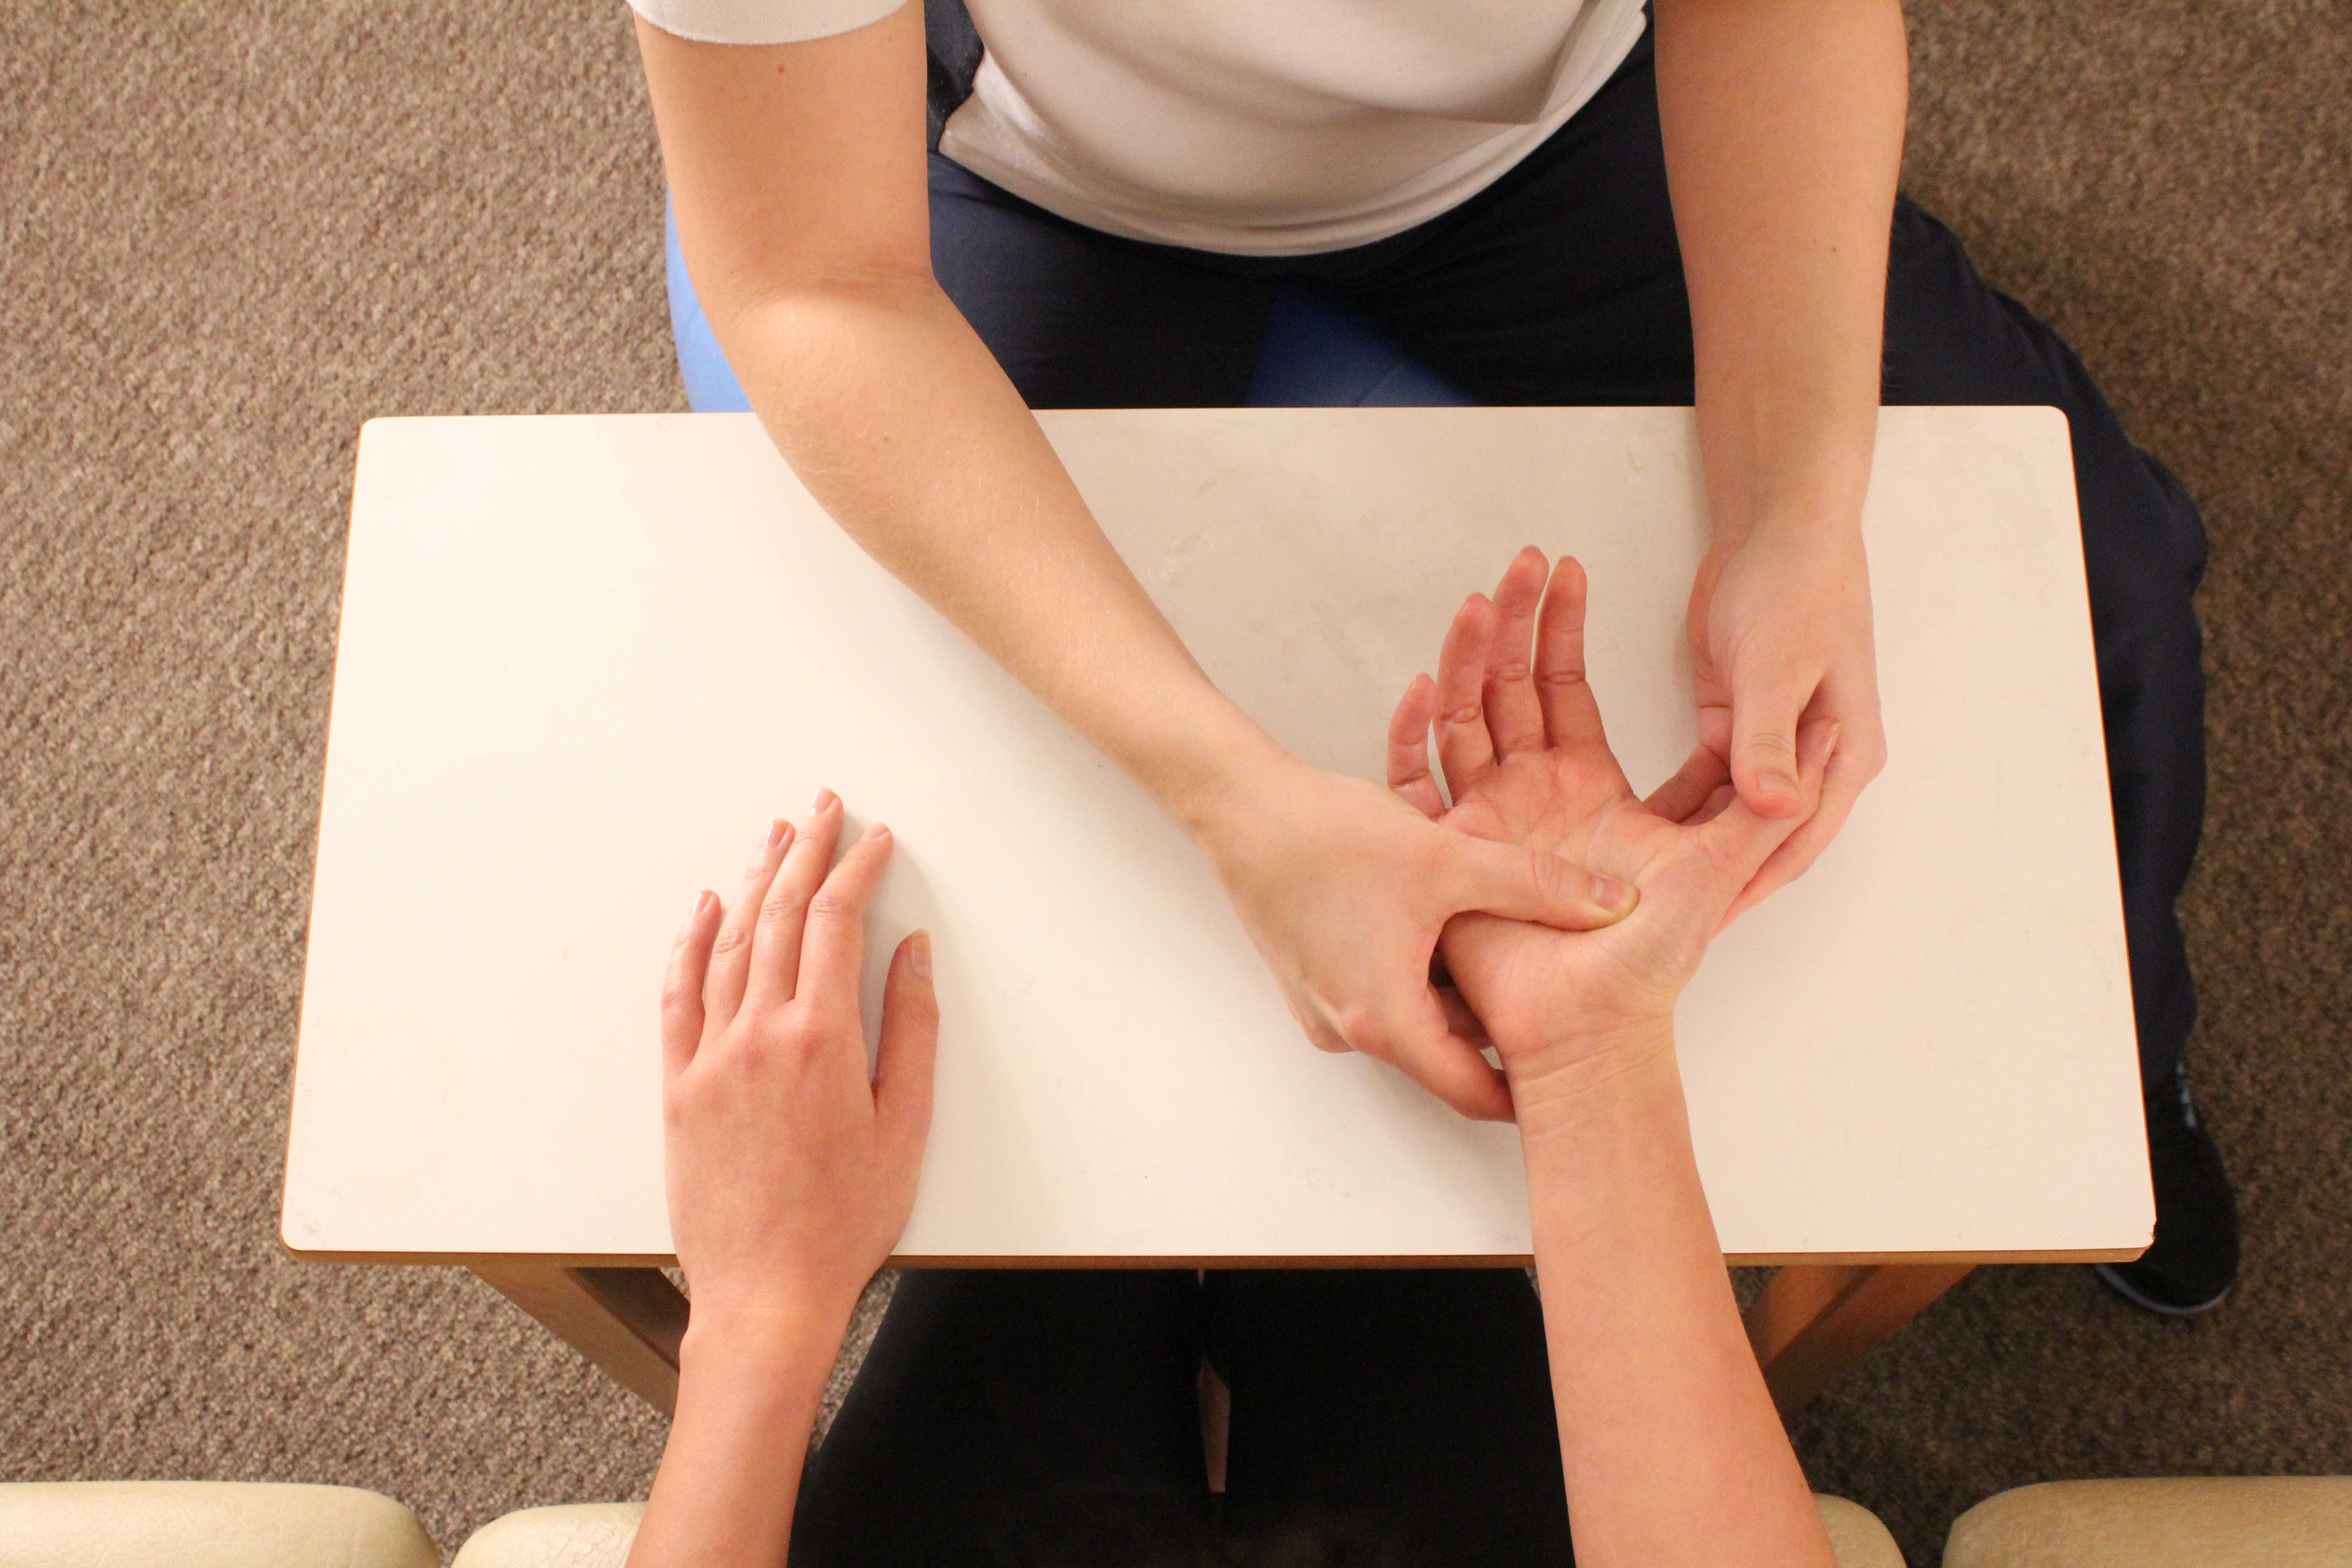 Specialist hand physiotherapy can help an individual regain strength and flexibility following a break.